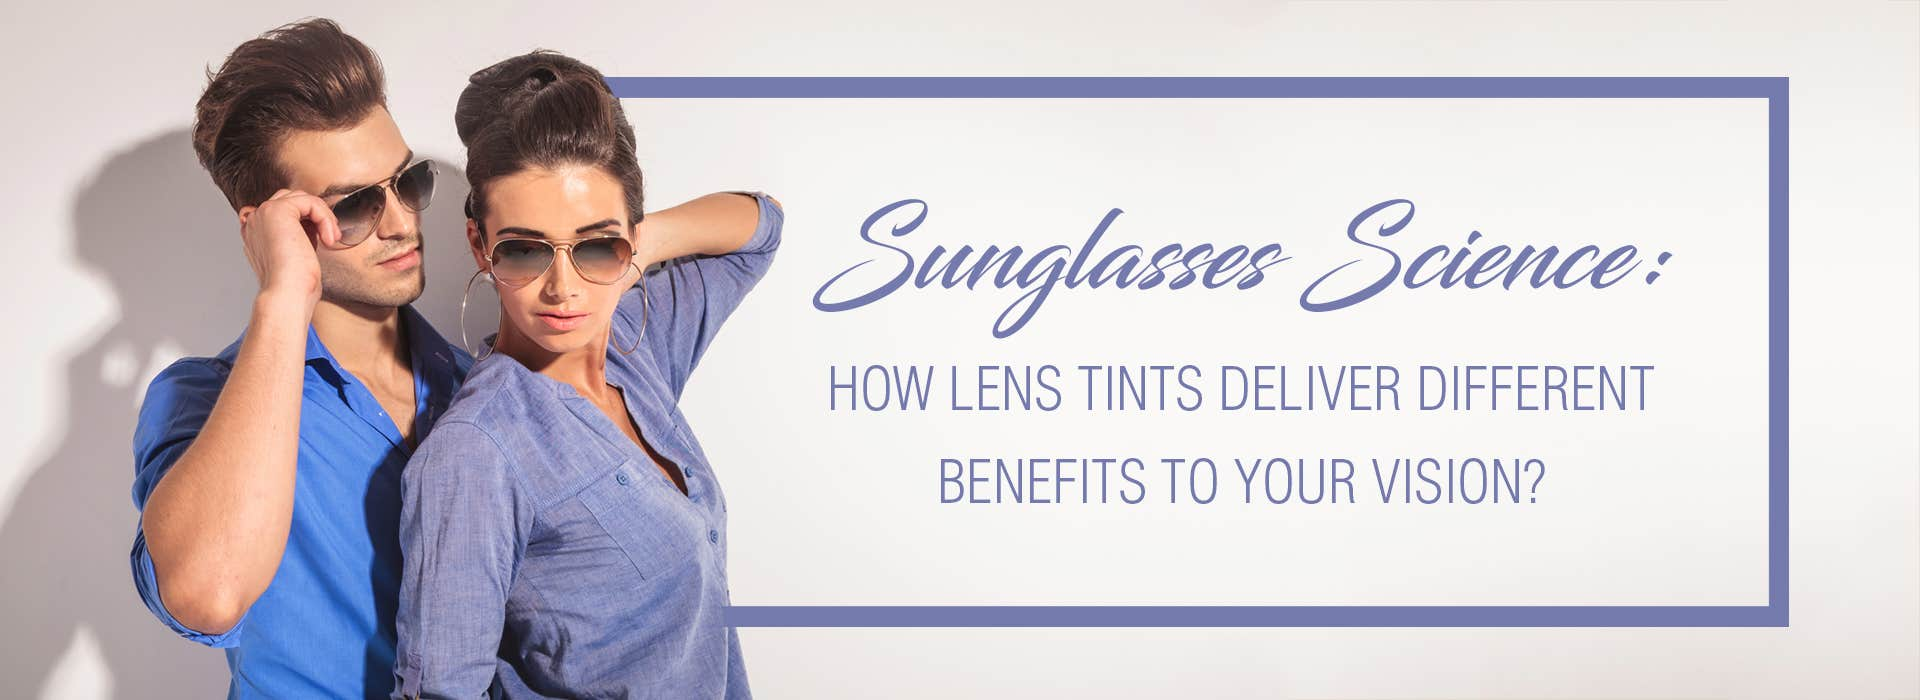 Sunglasses Science: How Lens Tints Deliver Different Benefits To Your Vision?